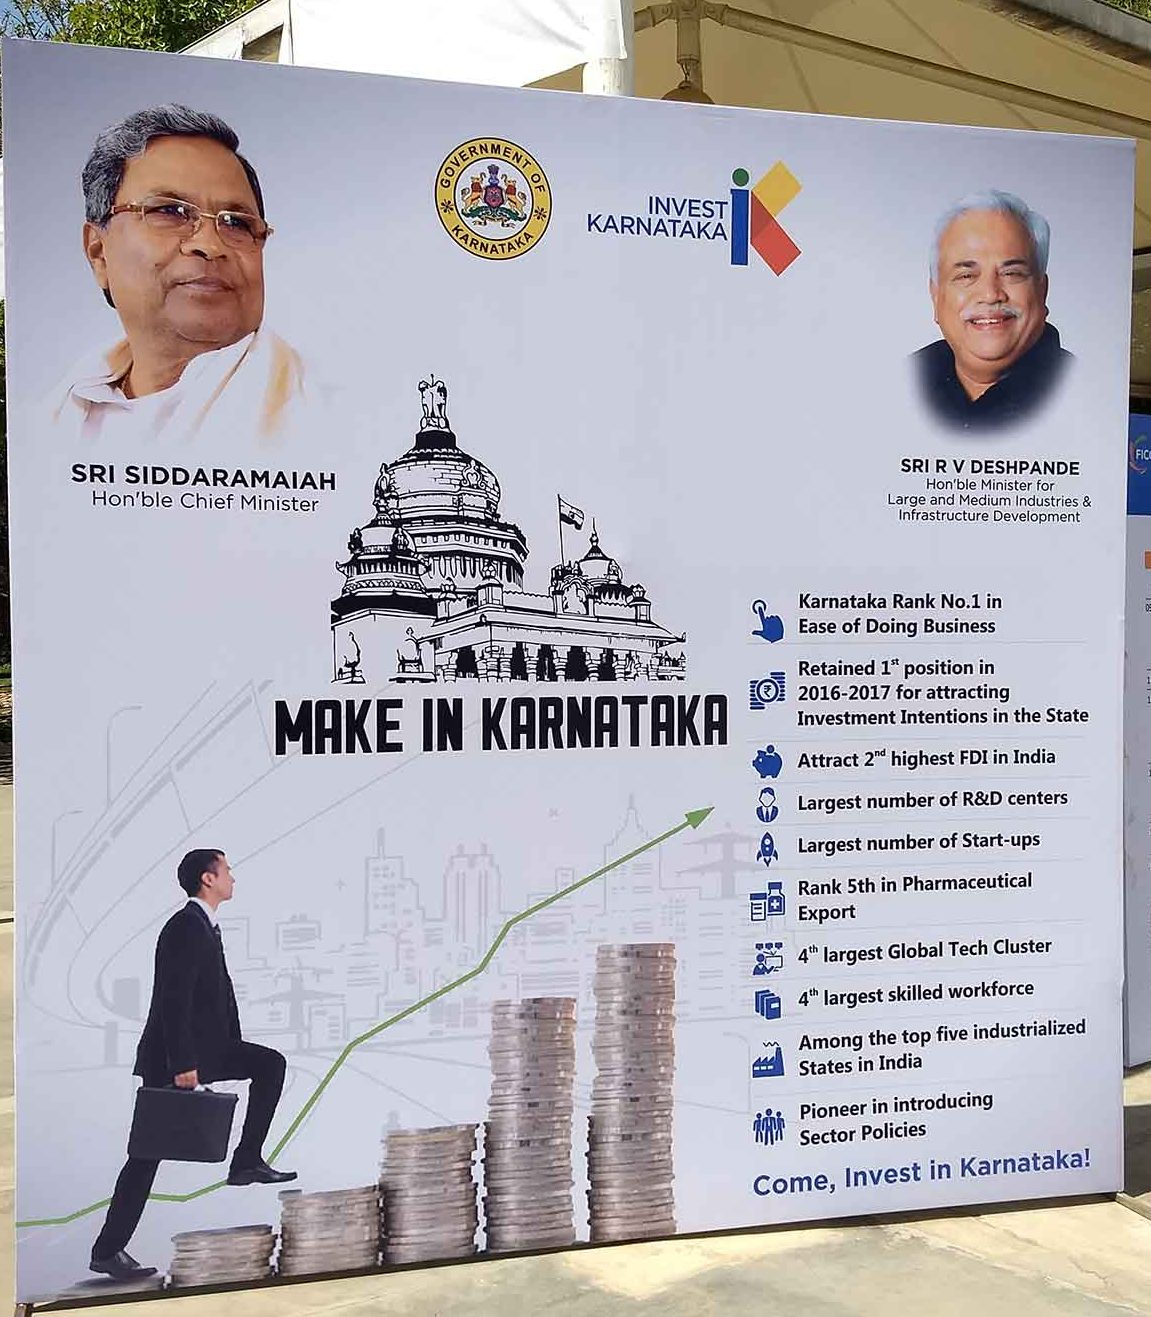 Make-in-Karnataka